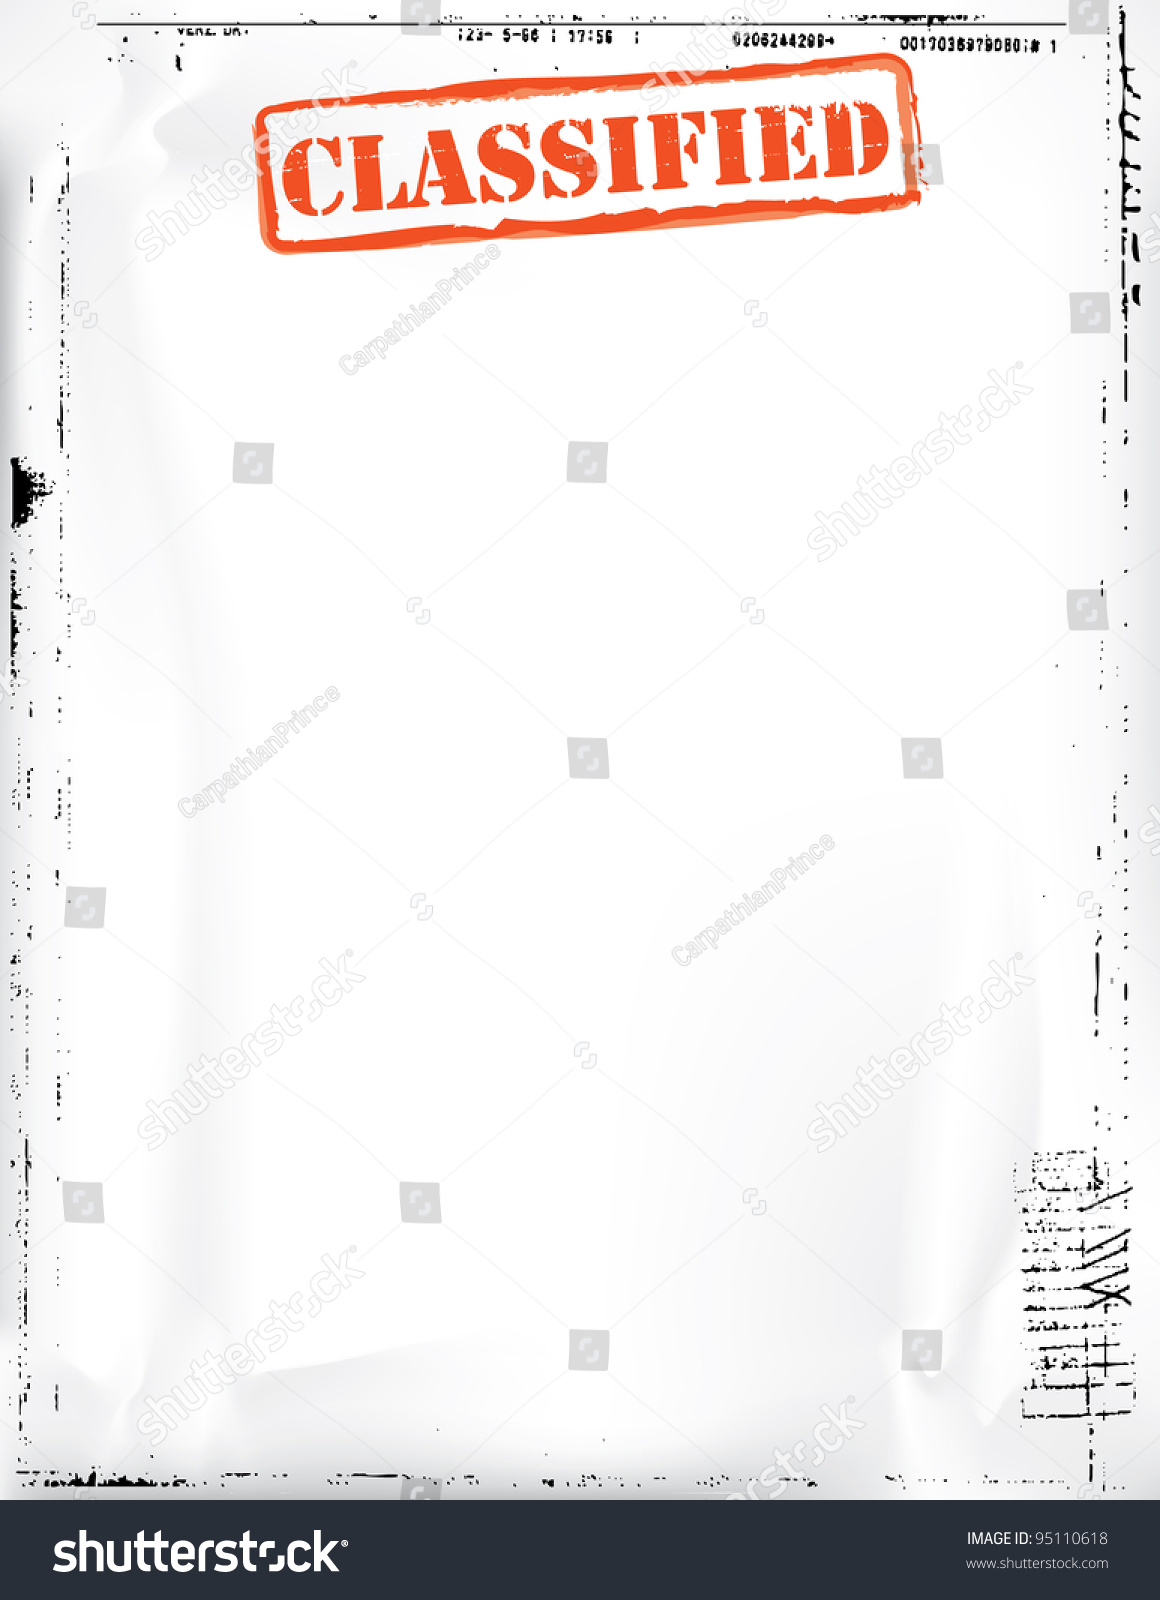 classified document template stock illustration 95110618